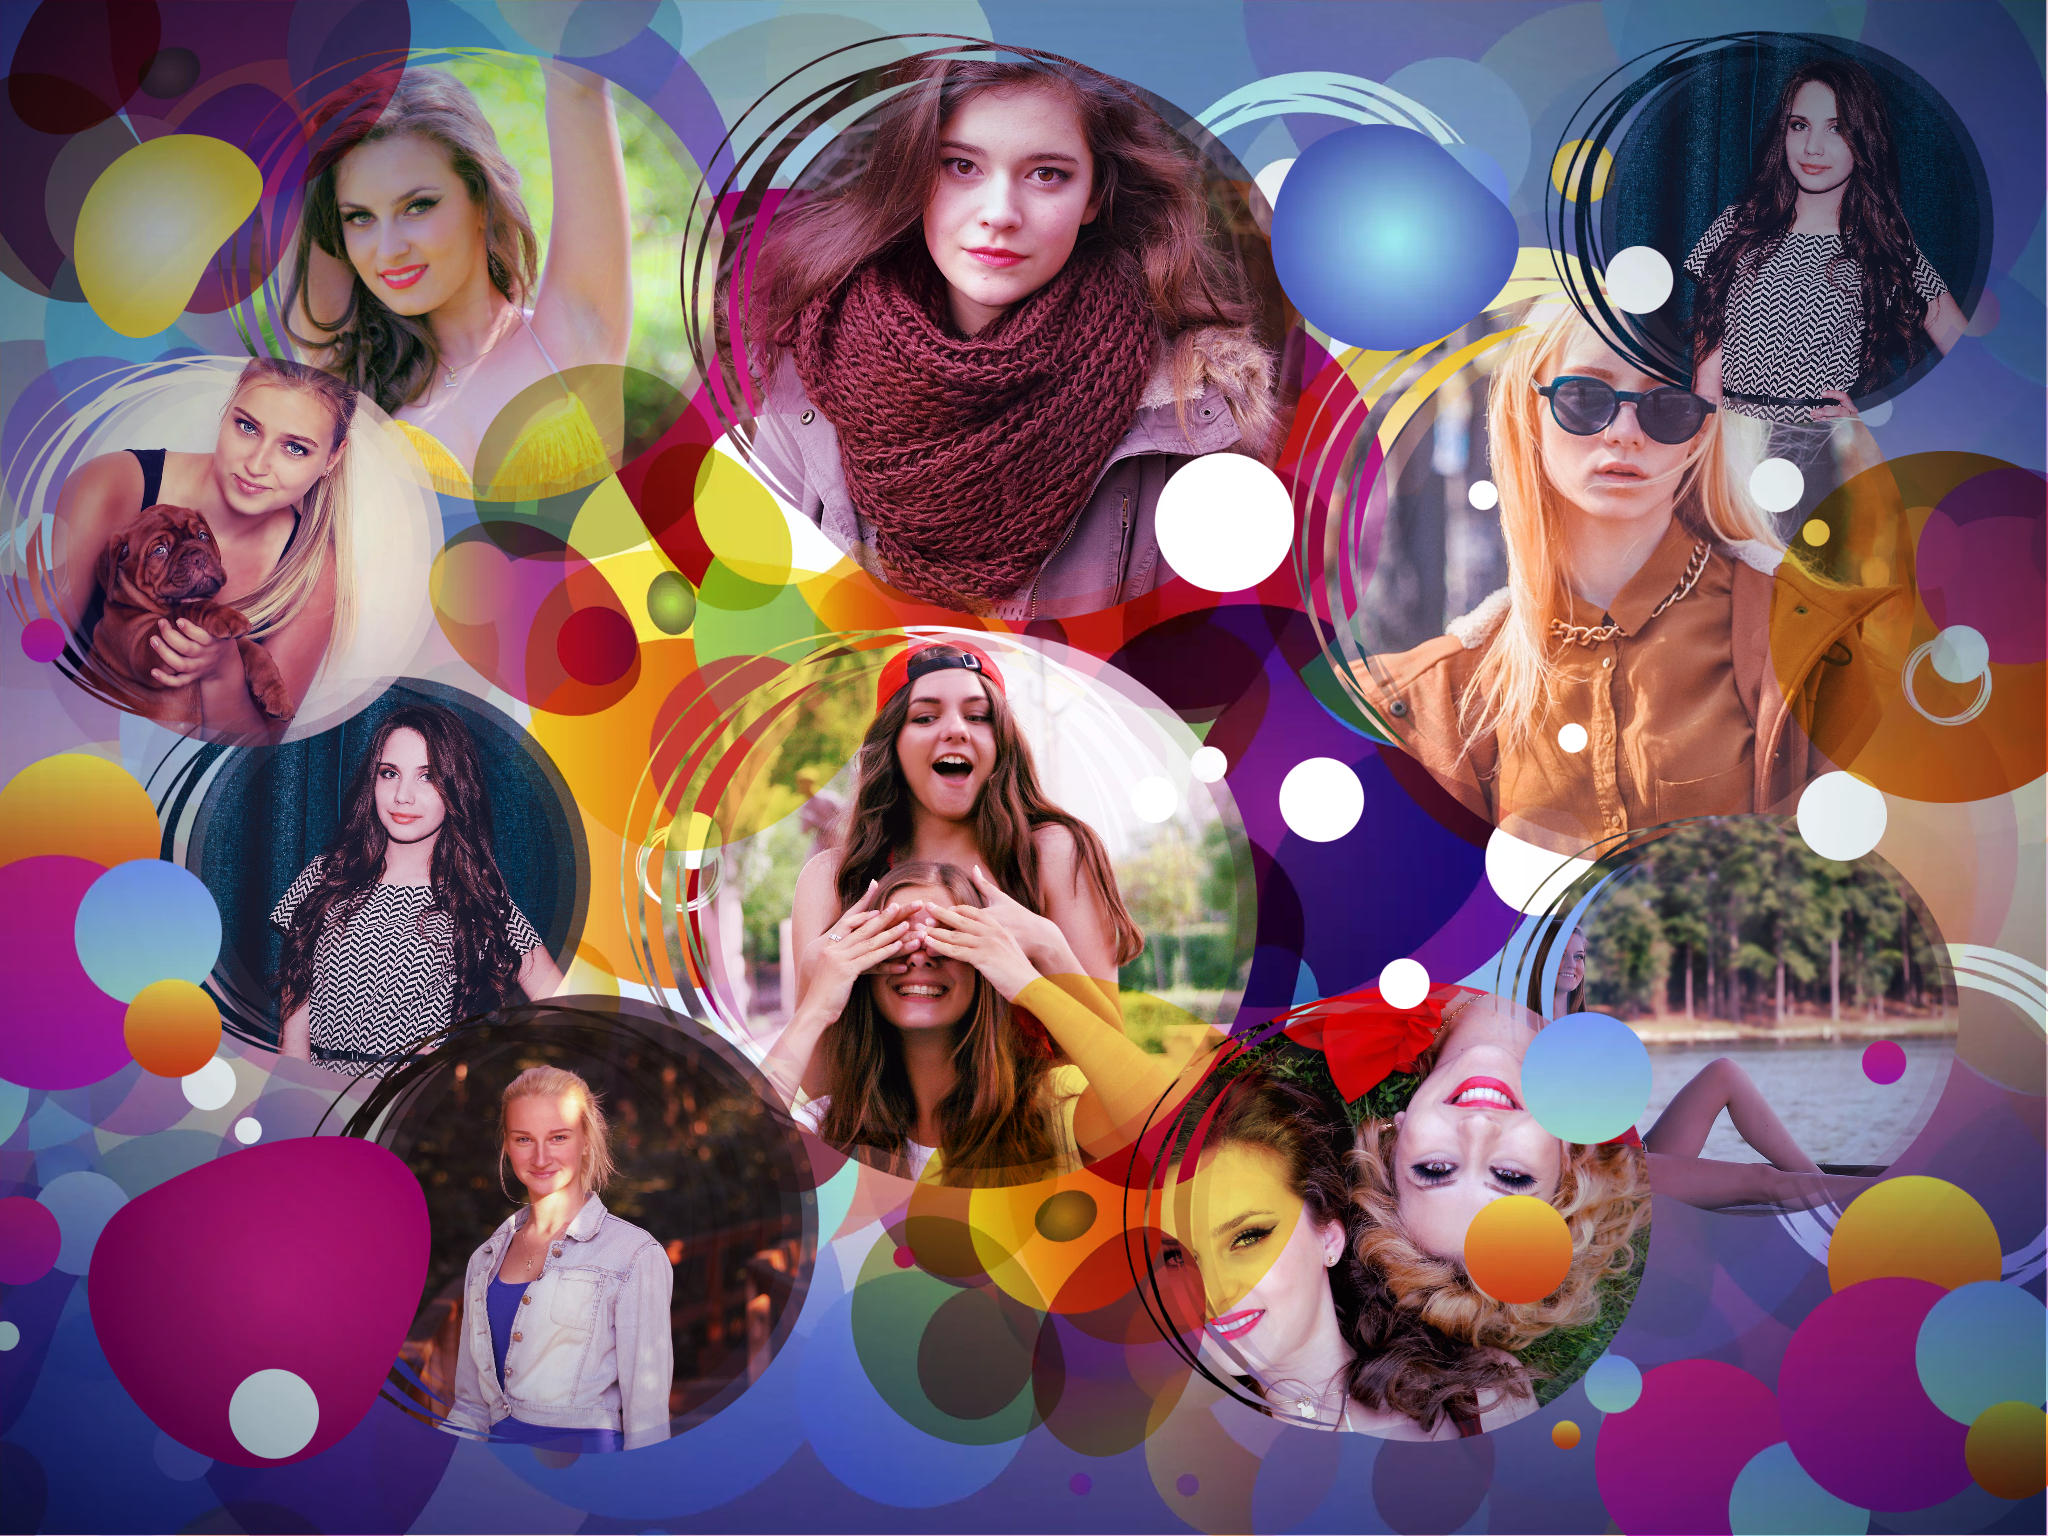 Color blobs collage abstract photovisi for Collage foto online gratis italiano